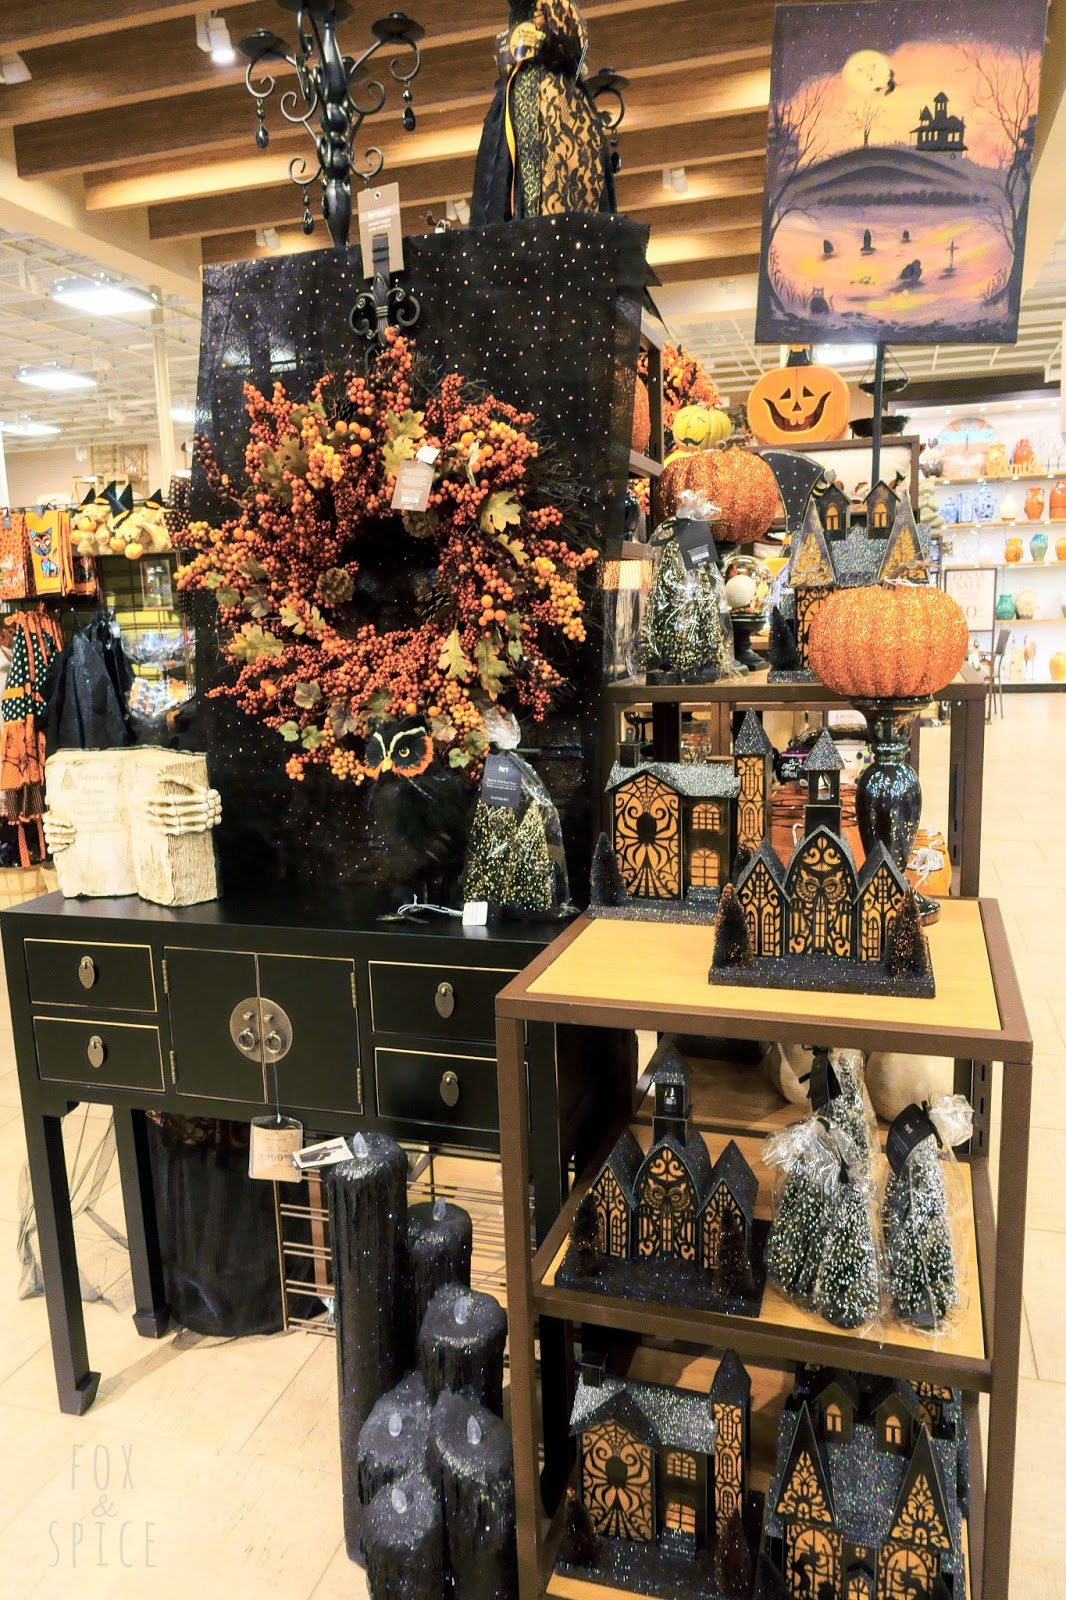 Peir One,Halloween 2020 2017 Halloween Finds: Pier 1 Imports | Fox & Spice